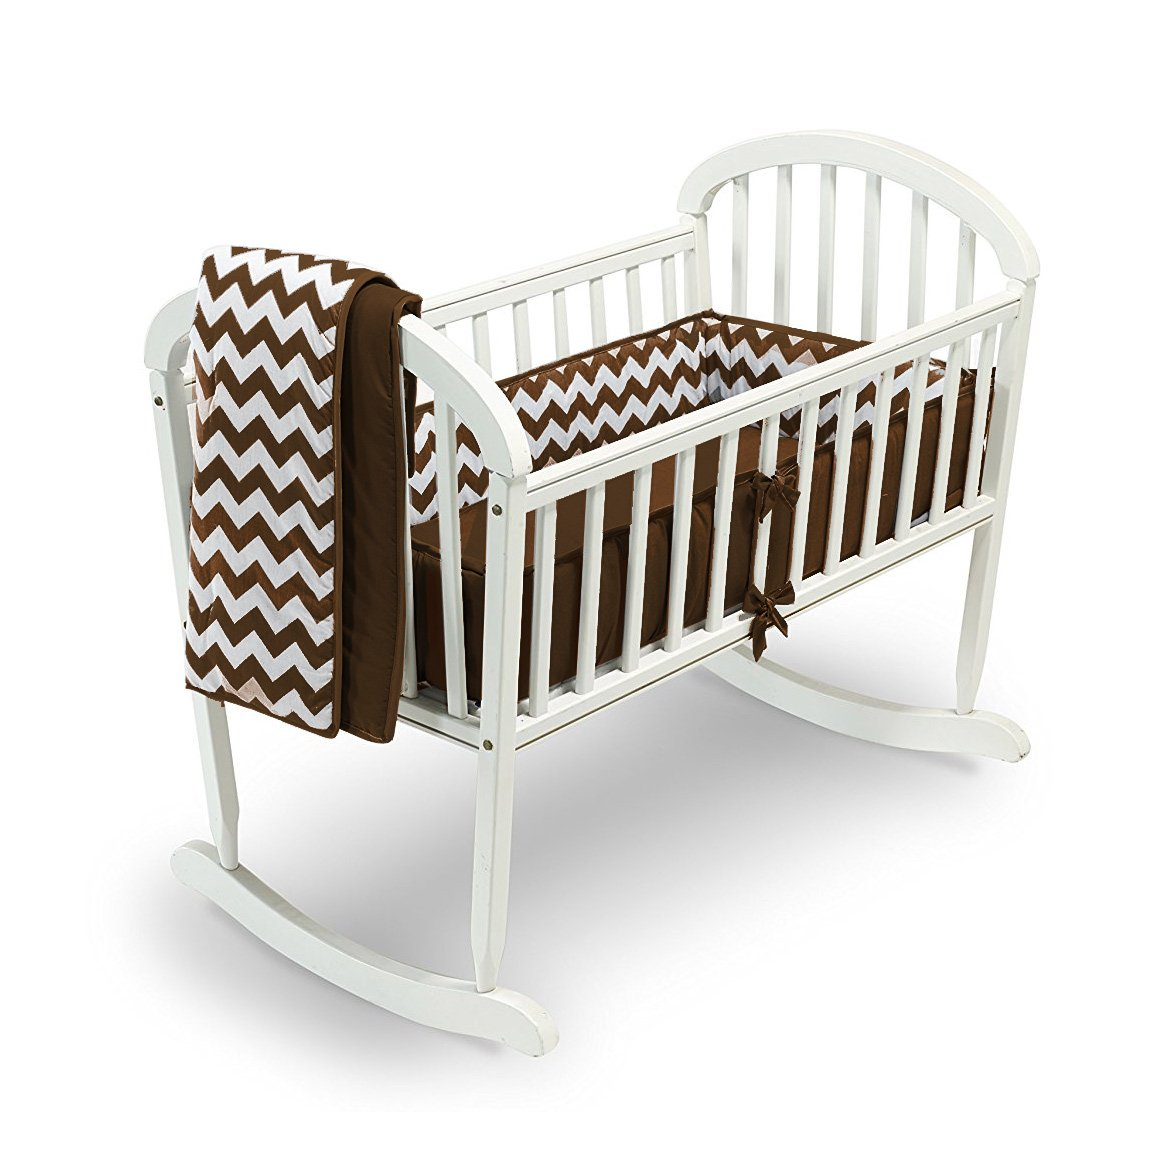 Chevron Cradle Bedding - Color: Pink, Size: 15x33 Baby Doll